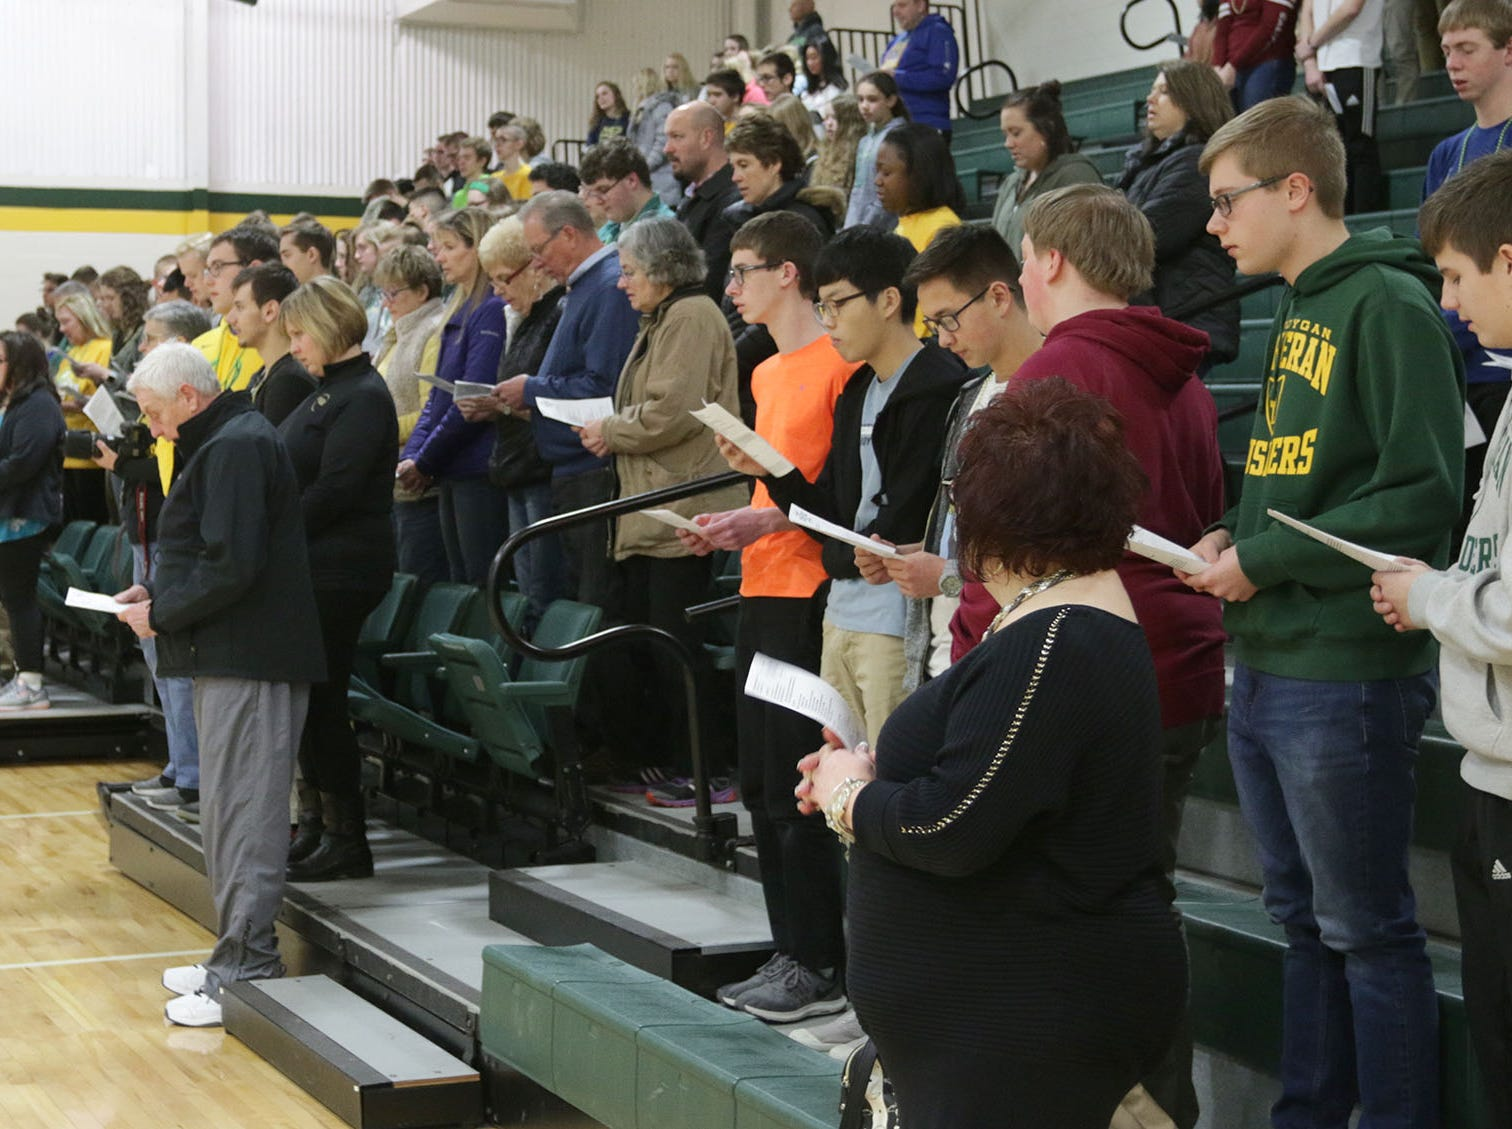 Students and staff stand for prayer before a pep rally, Thursday, March 14, 2109, in Sheboygan, Wis.